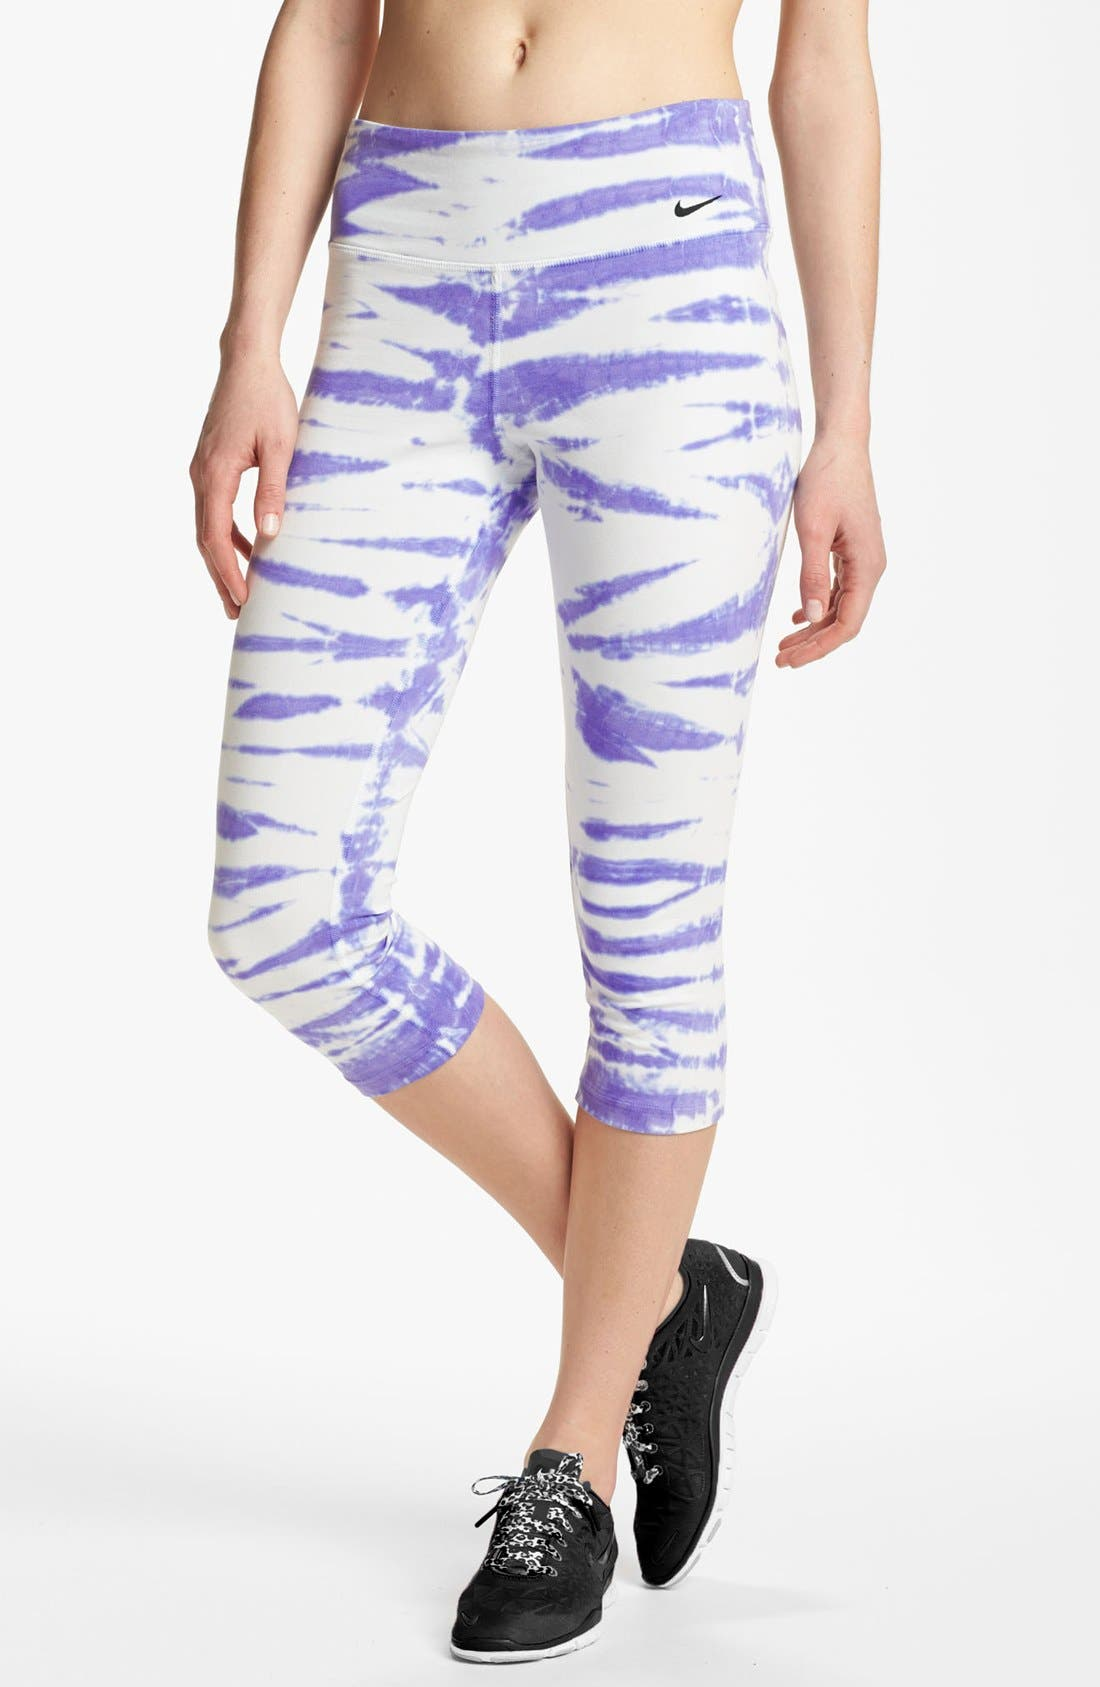 Alternate Image 1 Selected - Nike 'Twist Tie' Dri-FIT Cotton Capri Pants